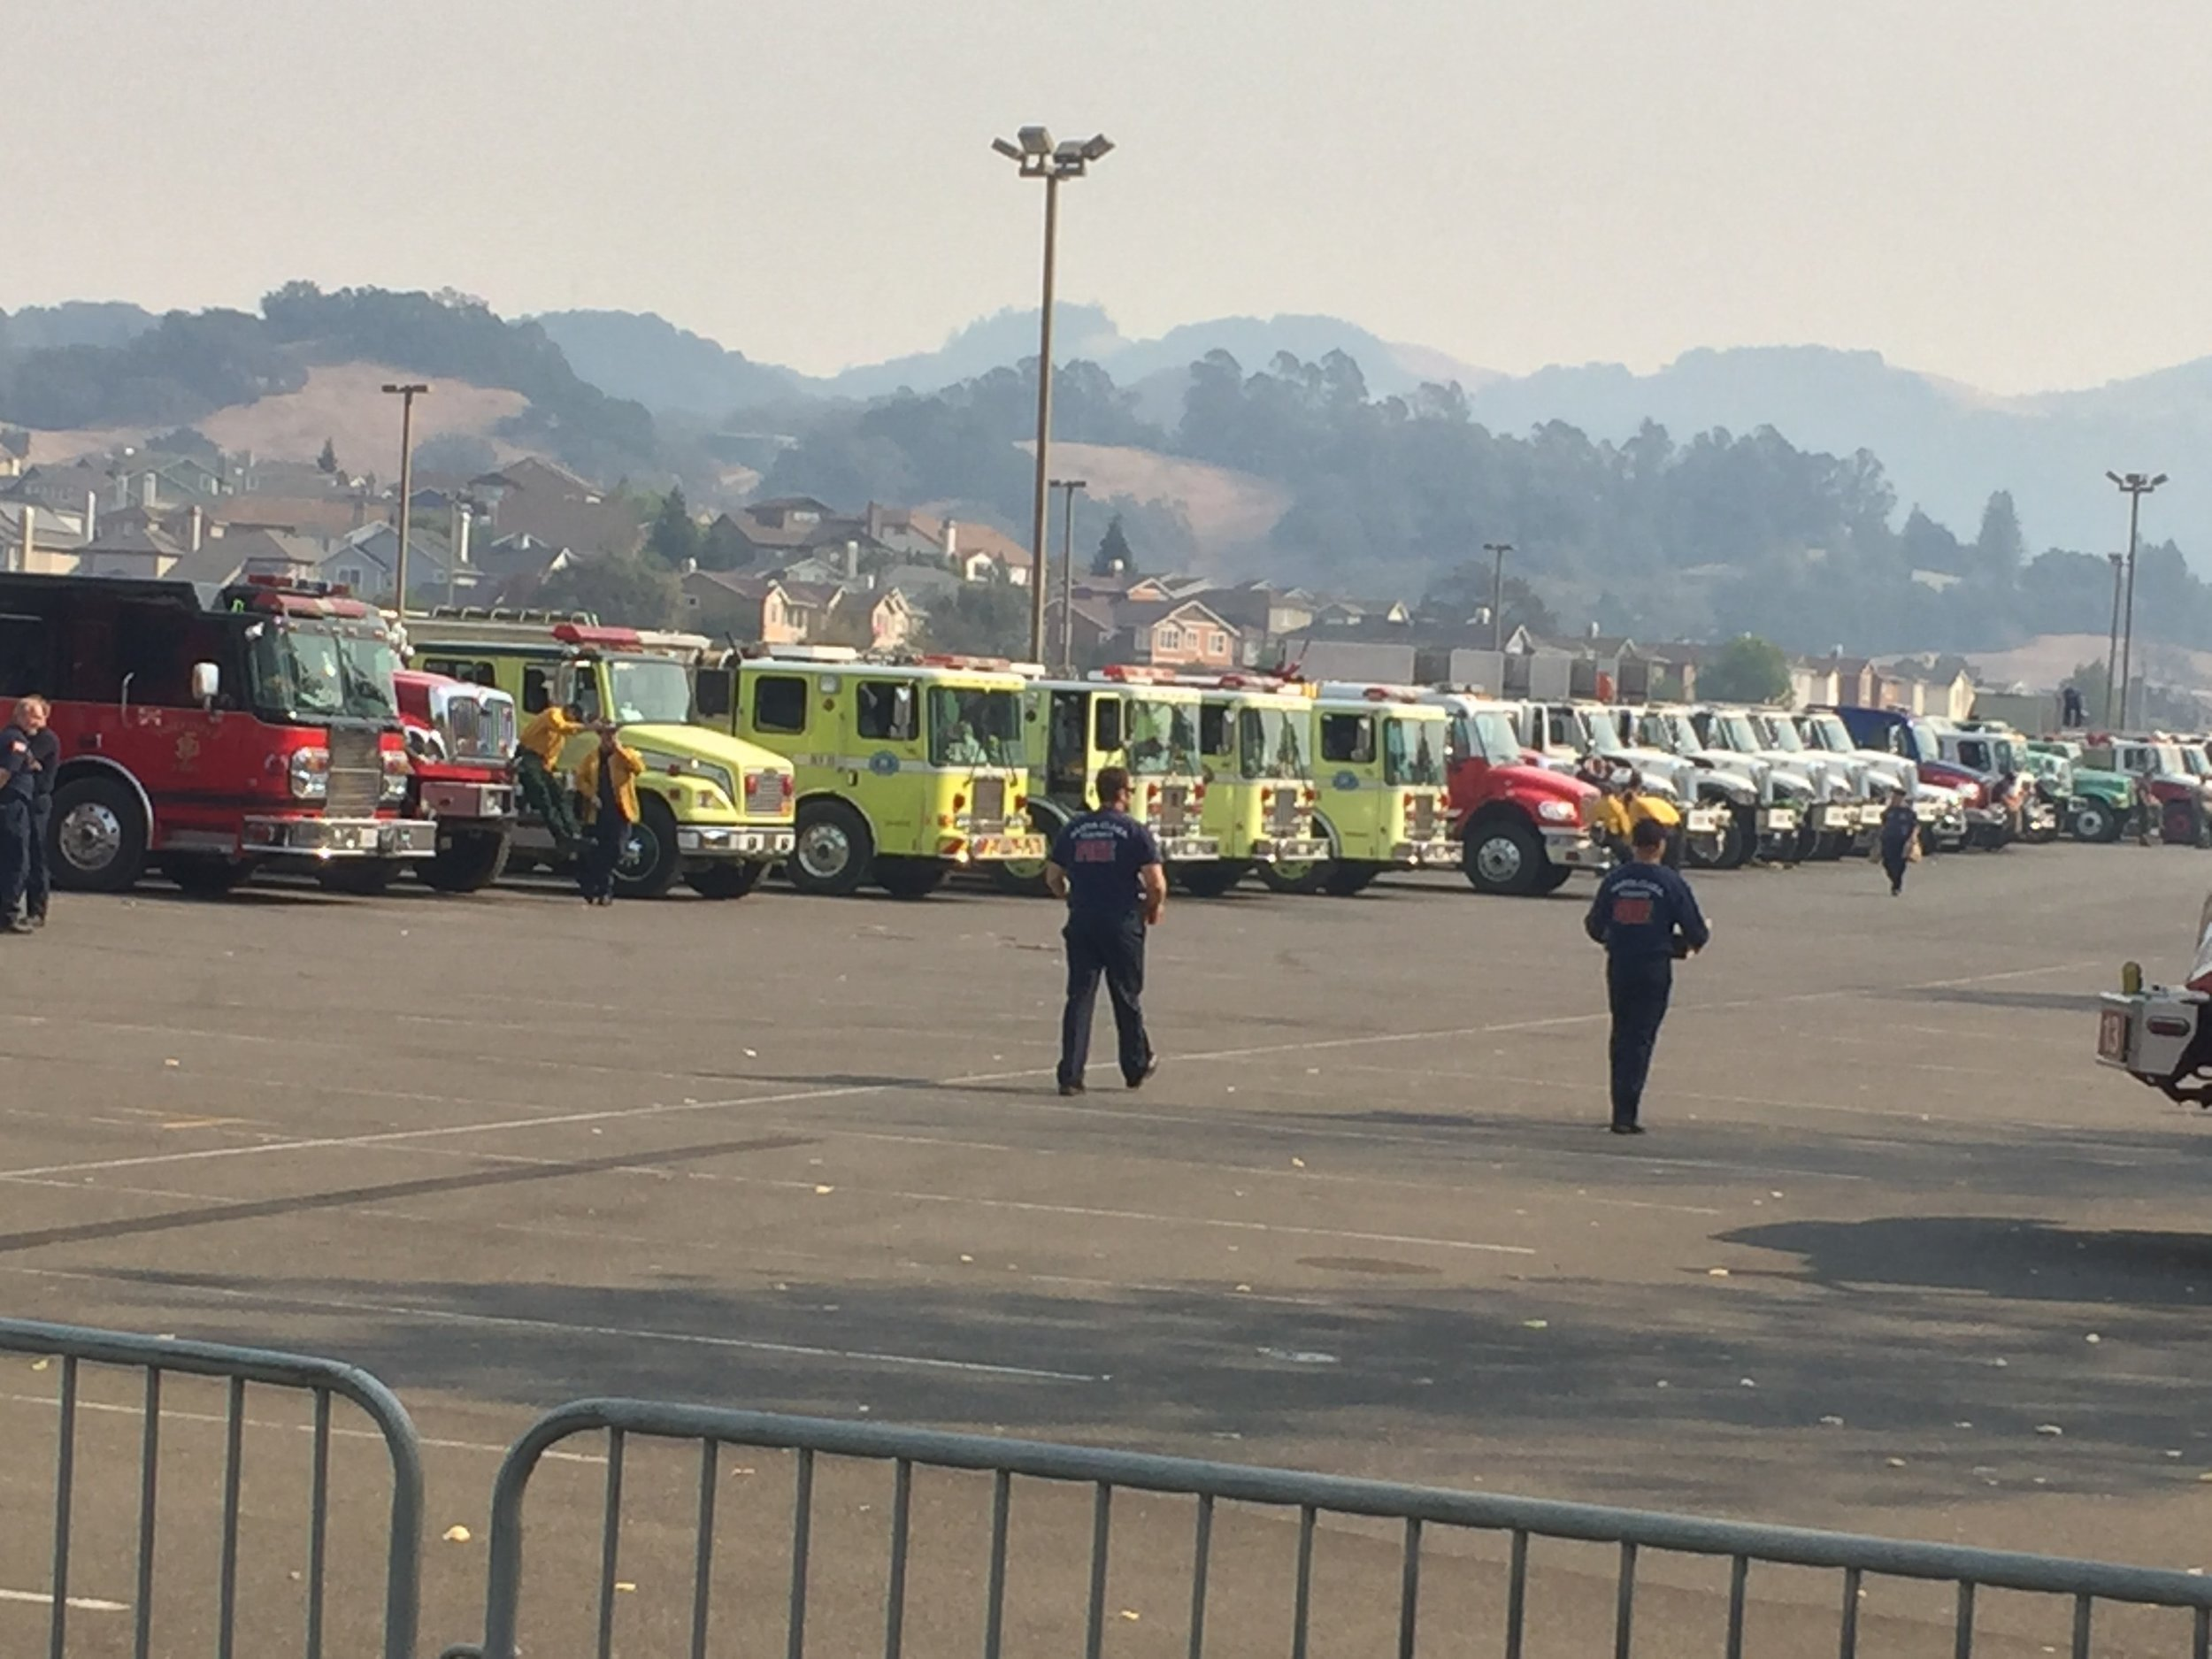 Santa Monica Fairgrounds Response Center Northbay fires 4.jpg